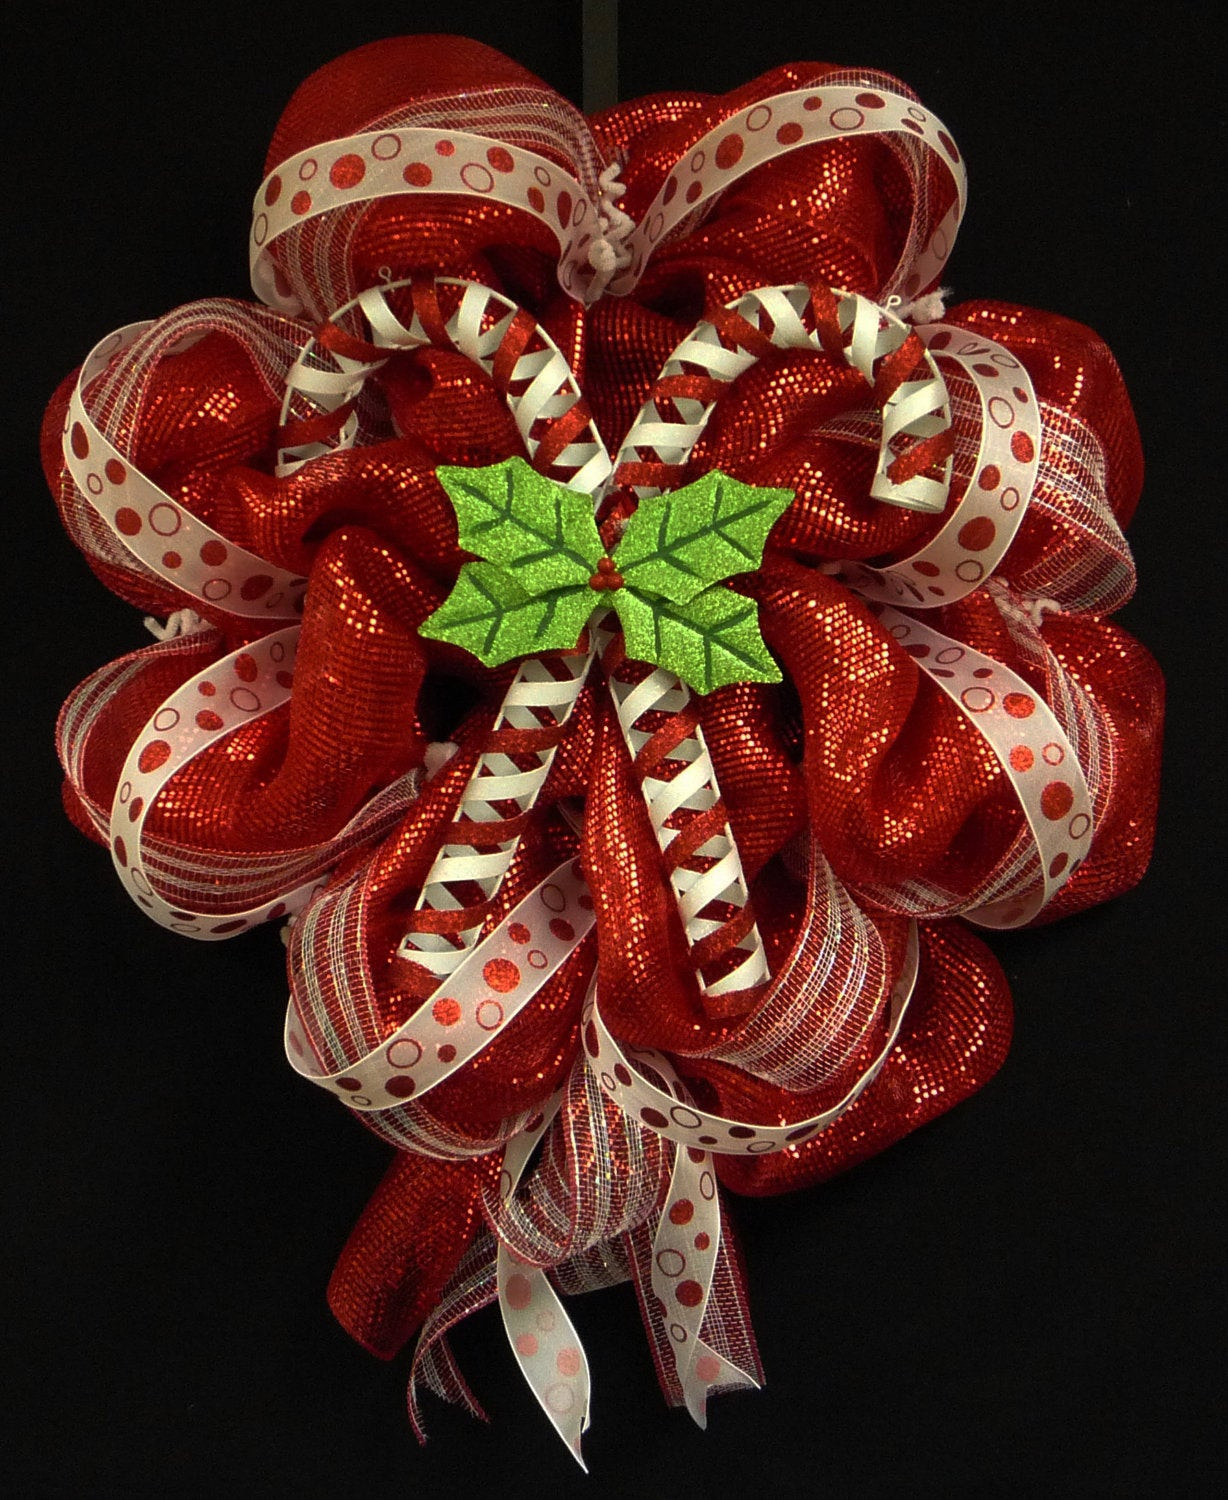 Christmas Wreath Candy  Candy Cane Wreath Christmas Wreath Red White Wreaths Poly